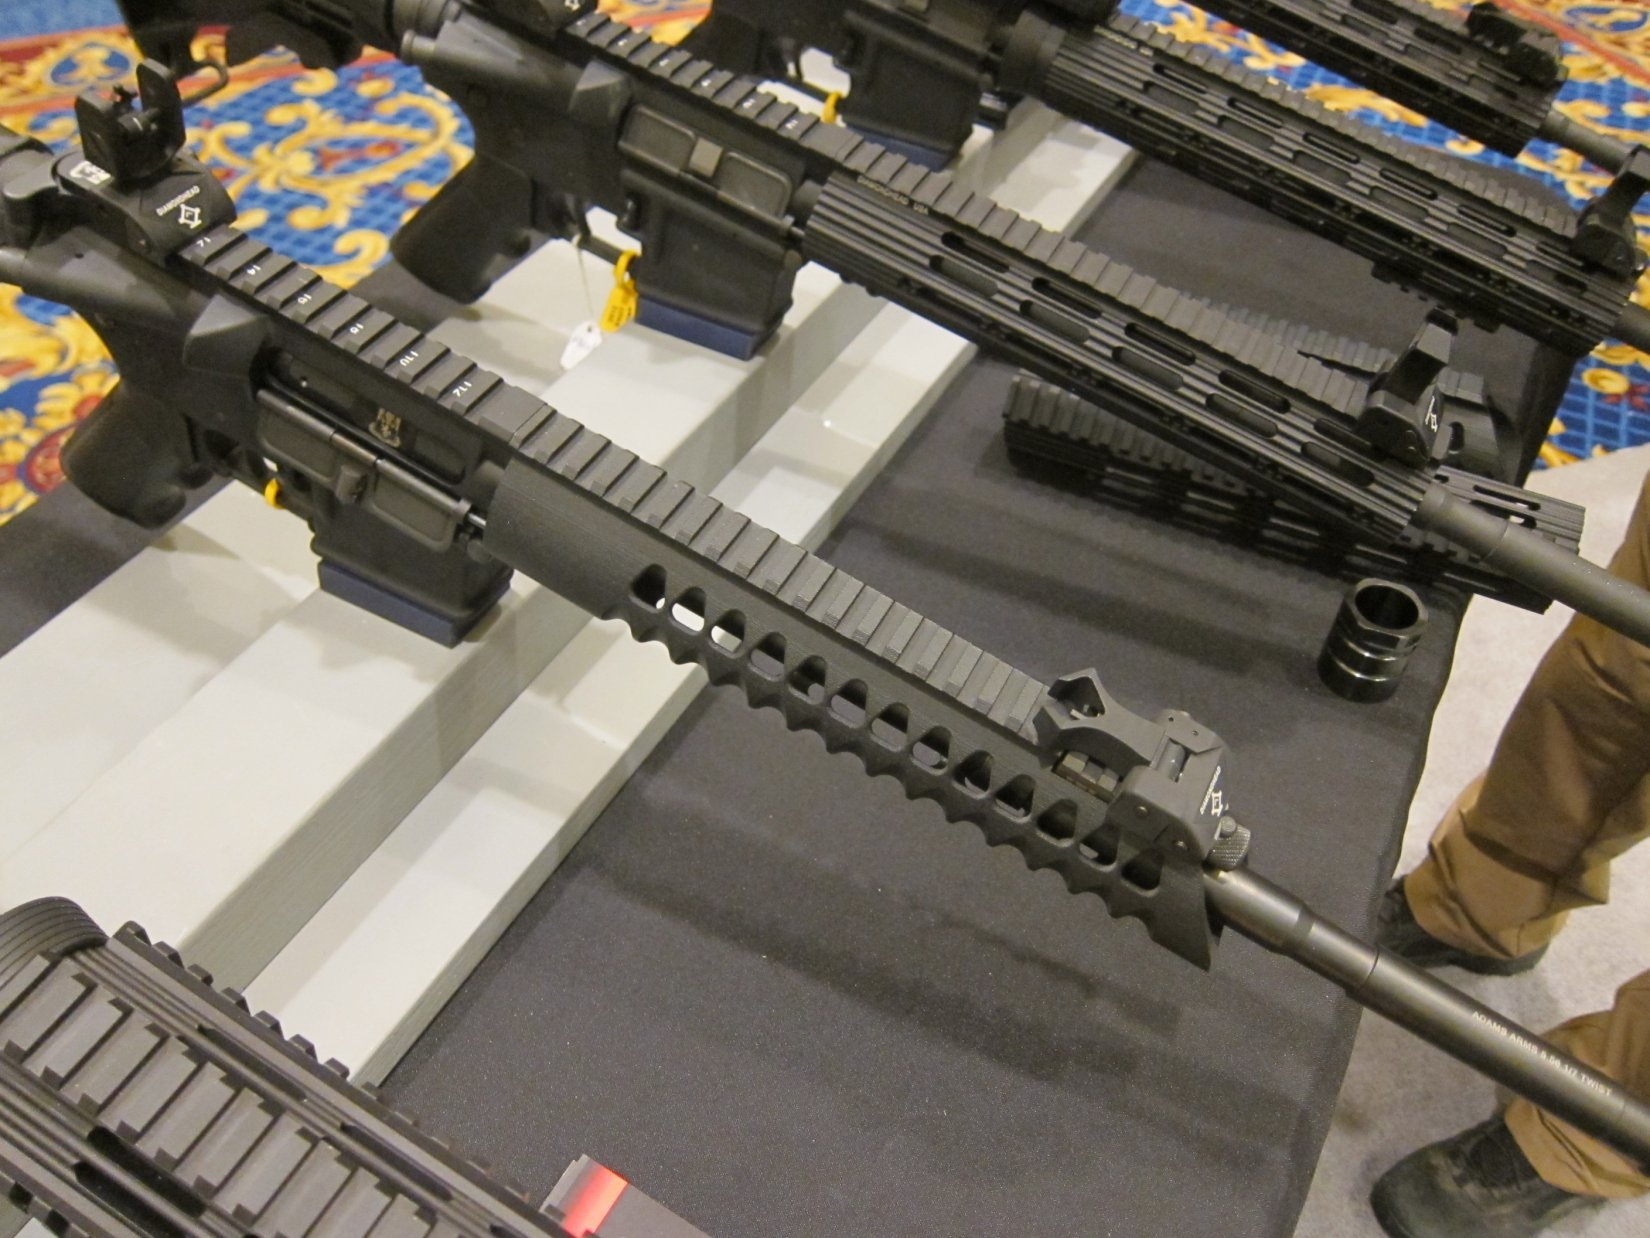 Diamondhead USA V RS T TD Versa Rail System Lightweight Free Float Triangular Modular Rail Tactical Handguard SHOT Show 2012 DefenseReview.com DR 3 Diamondhead USA V RS T/TD Versa Rail System Lightweight Free Float Triangular Tactical Handguard/Modular Rail System for Tactical AR 15 Carbine/SBRs at SHOT Show 2012 (Video!)